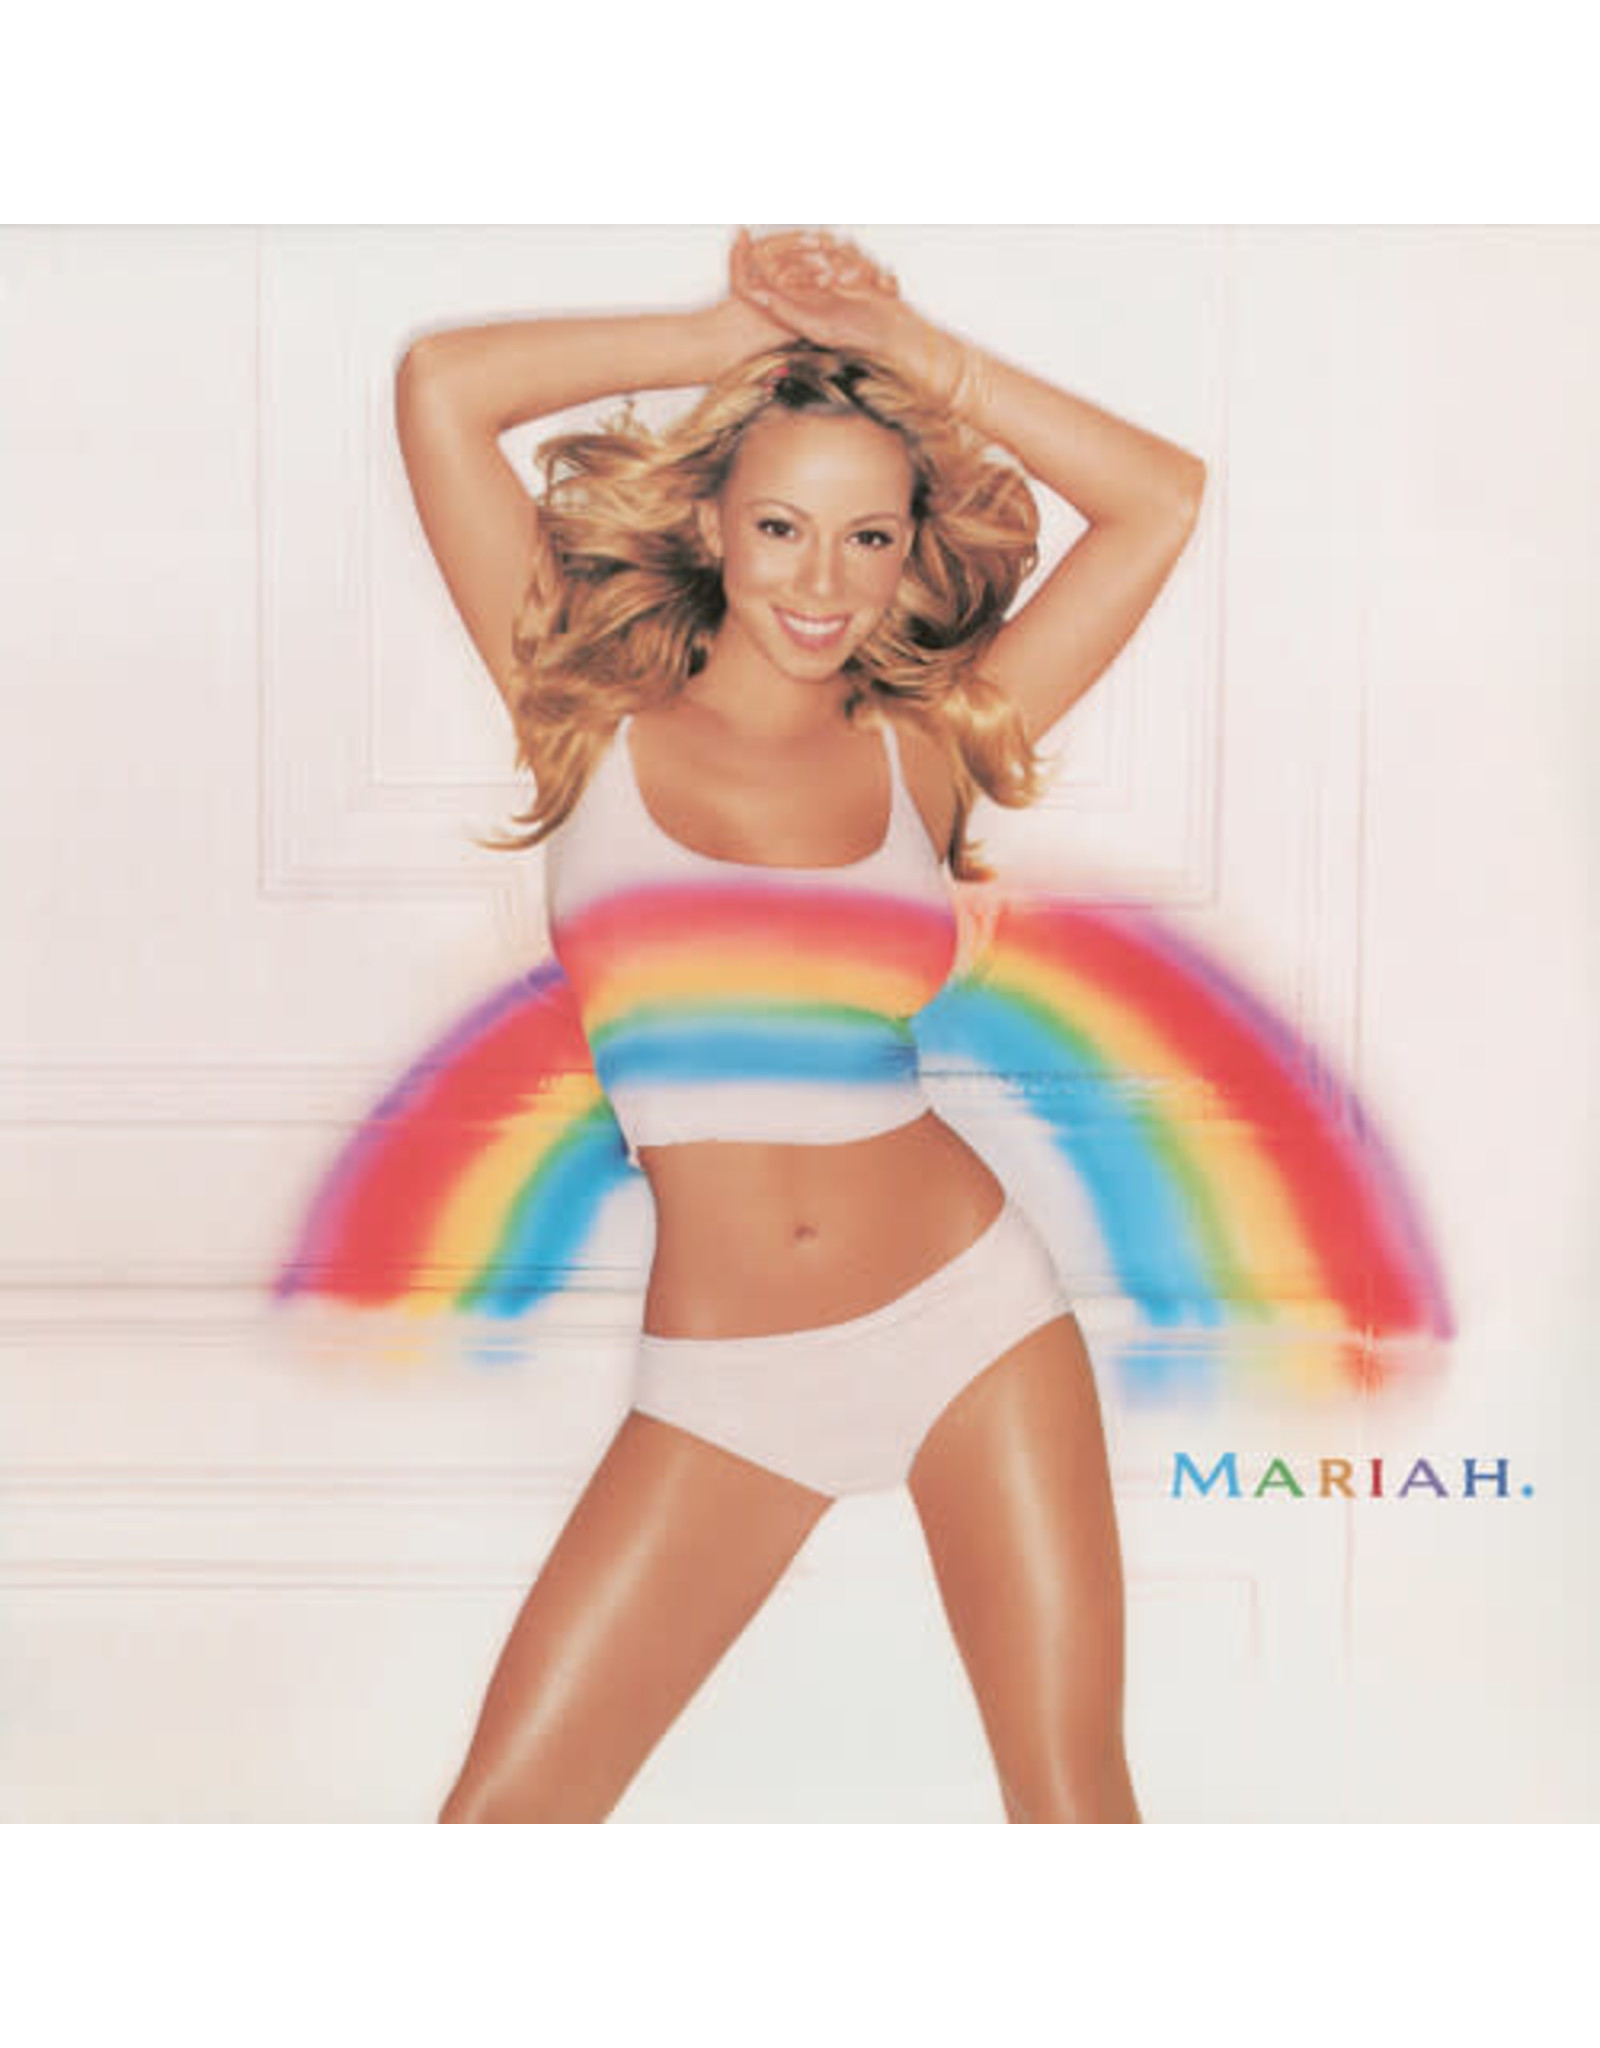 New Vinyl Mariah Carey - Rainbow 2LP